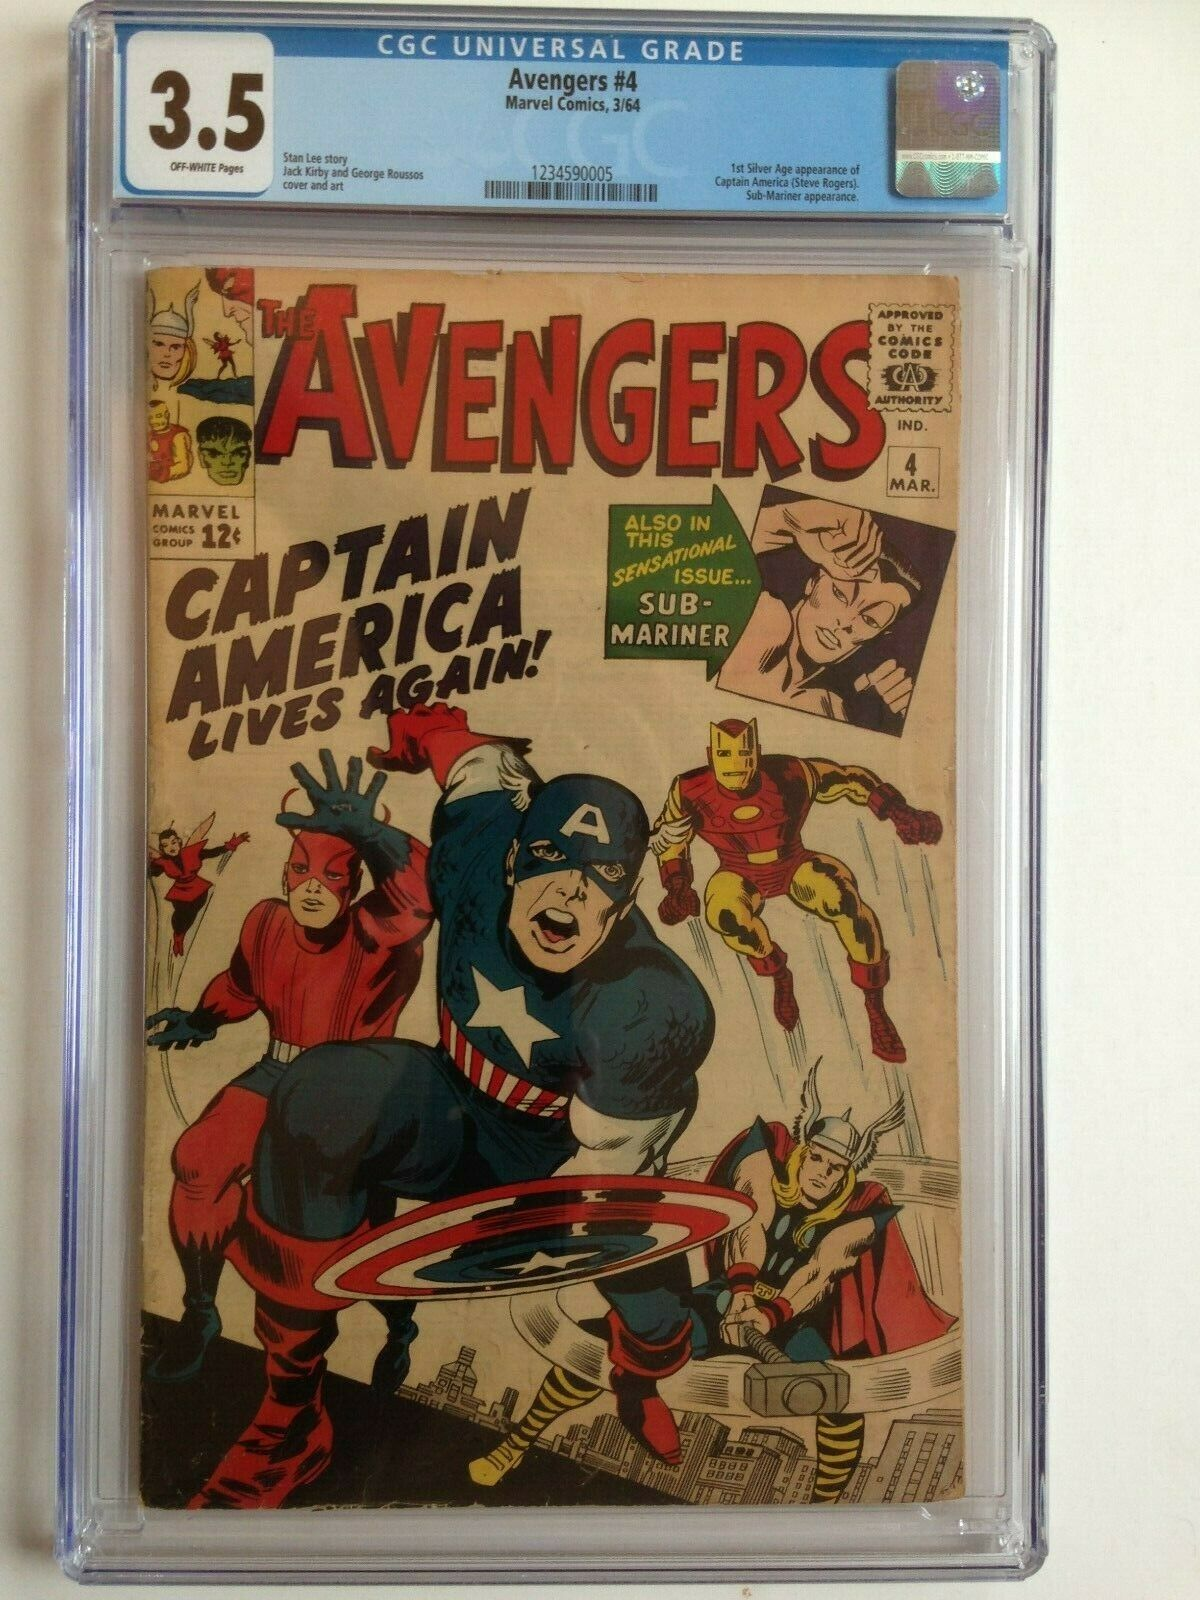 Avengers #4, CGC 3.5, UNRESTORED, CASE INTACT, Shipping $50 for 1, 2 or 3 books